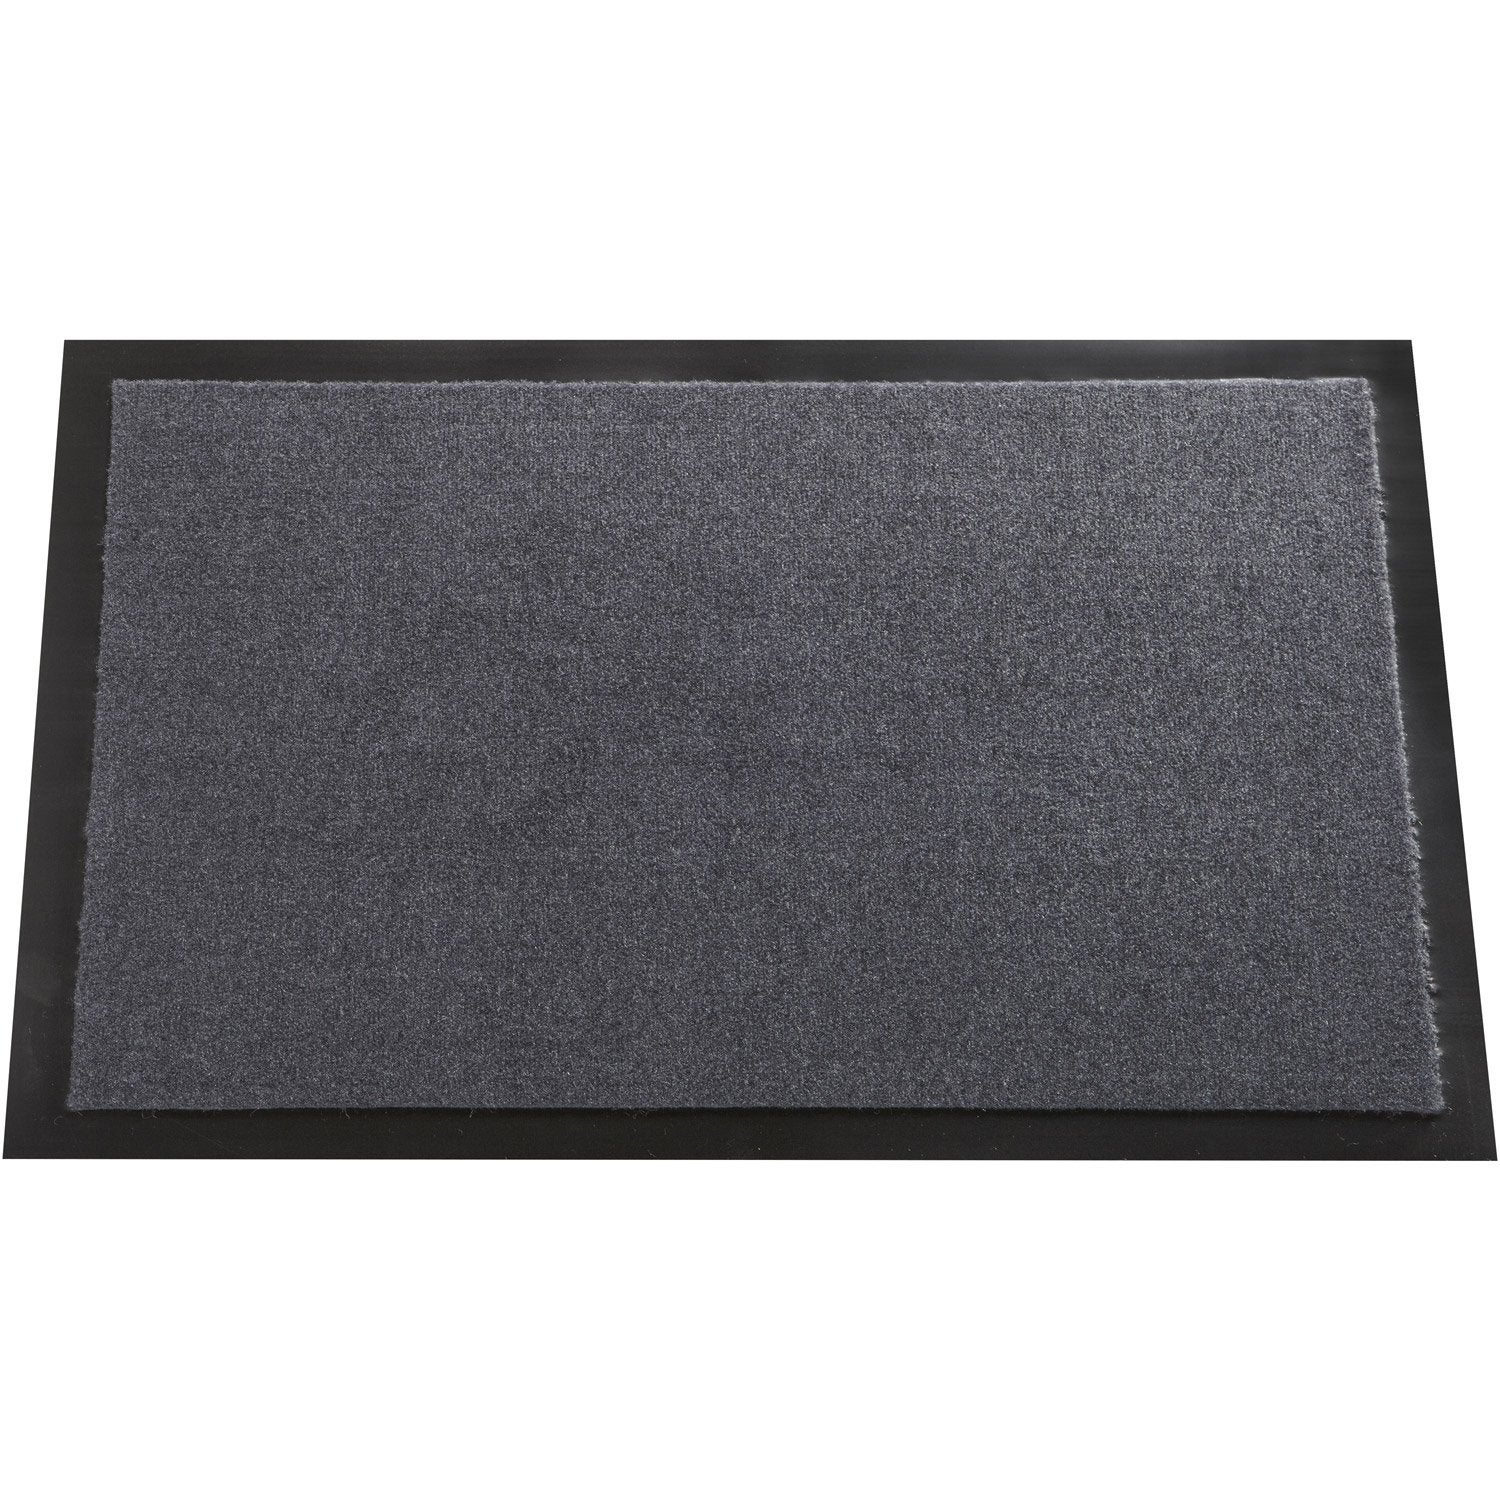 tapis antipoussi re mood gris galet n 1 60 x 40 cm. Black Bedroom Furniture Sets. Home Design Ideas